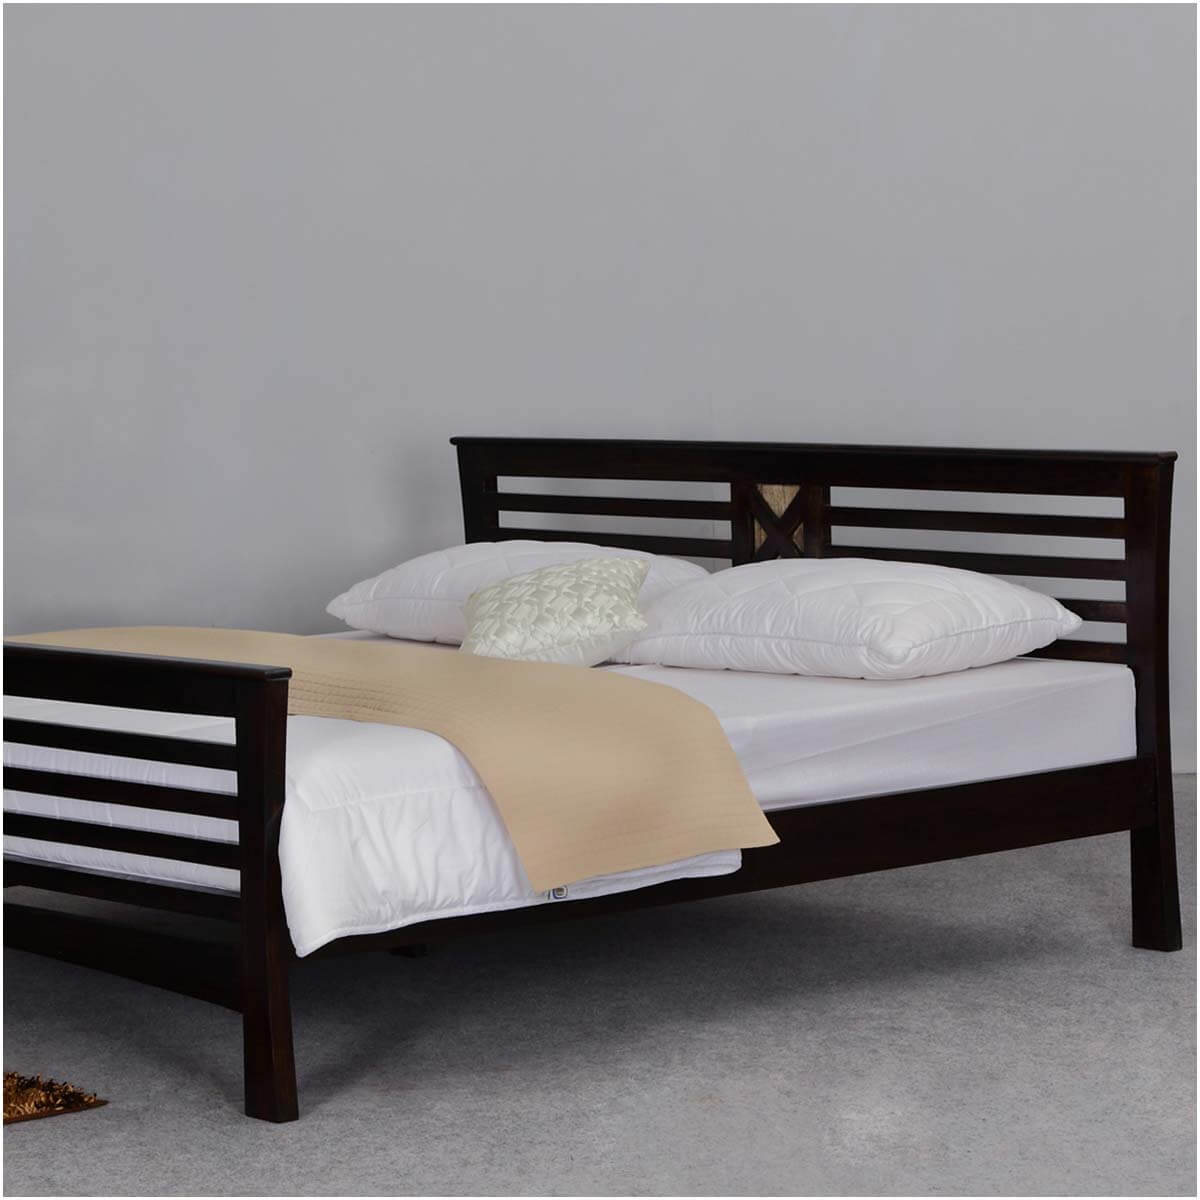 Texas solid wood modern platform bed frame w headboard footboard